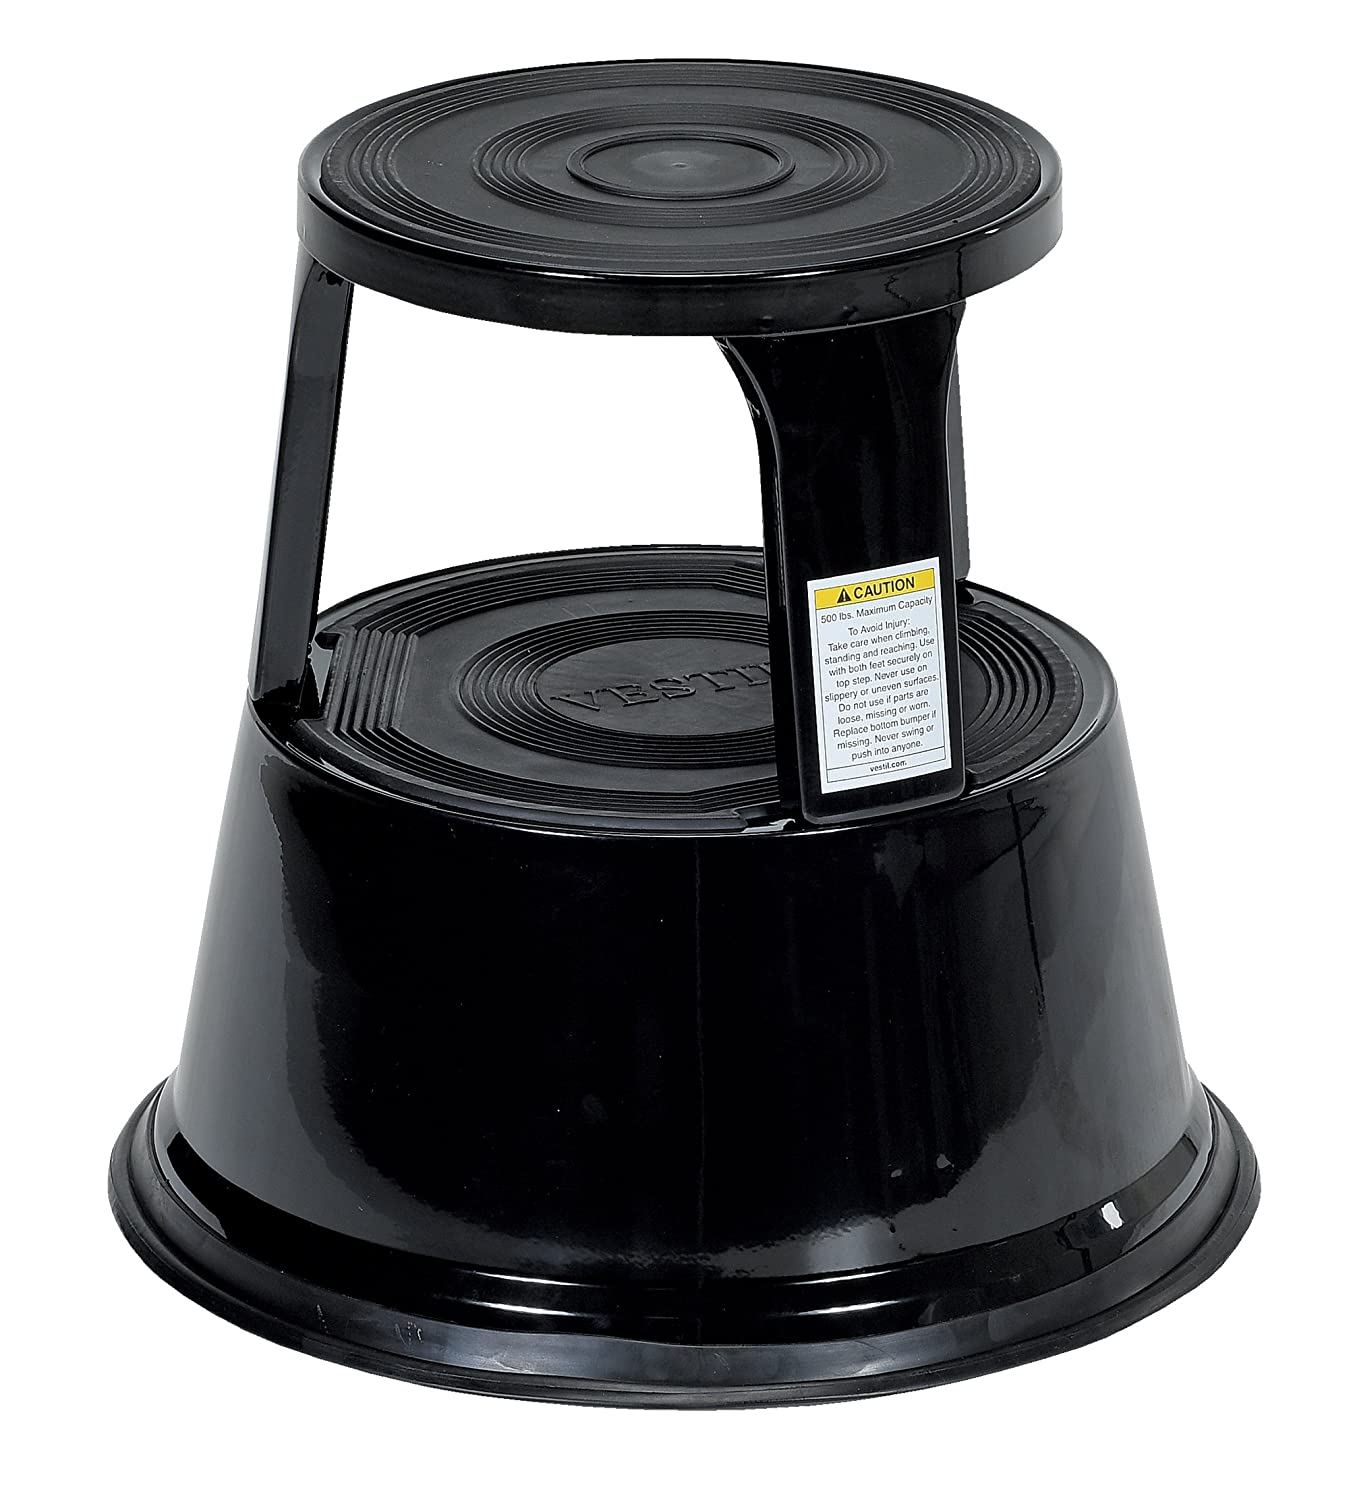 Wondrous Vestil Step 17 Bk Steel Rolling Step Stool With Powder Coat Finish 17 1 8 Top Step Height 500 Lbs Capacity Black Alphanode Cool Chair Designs And Ideas Alphanodeonline